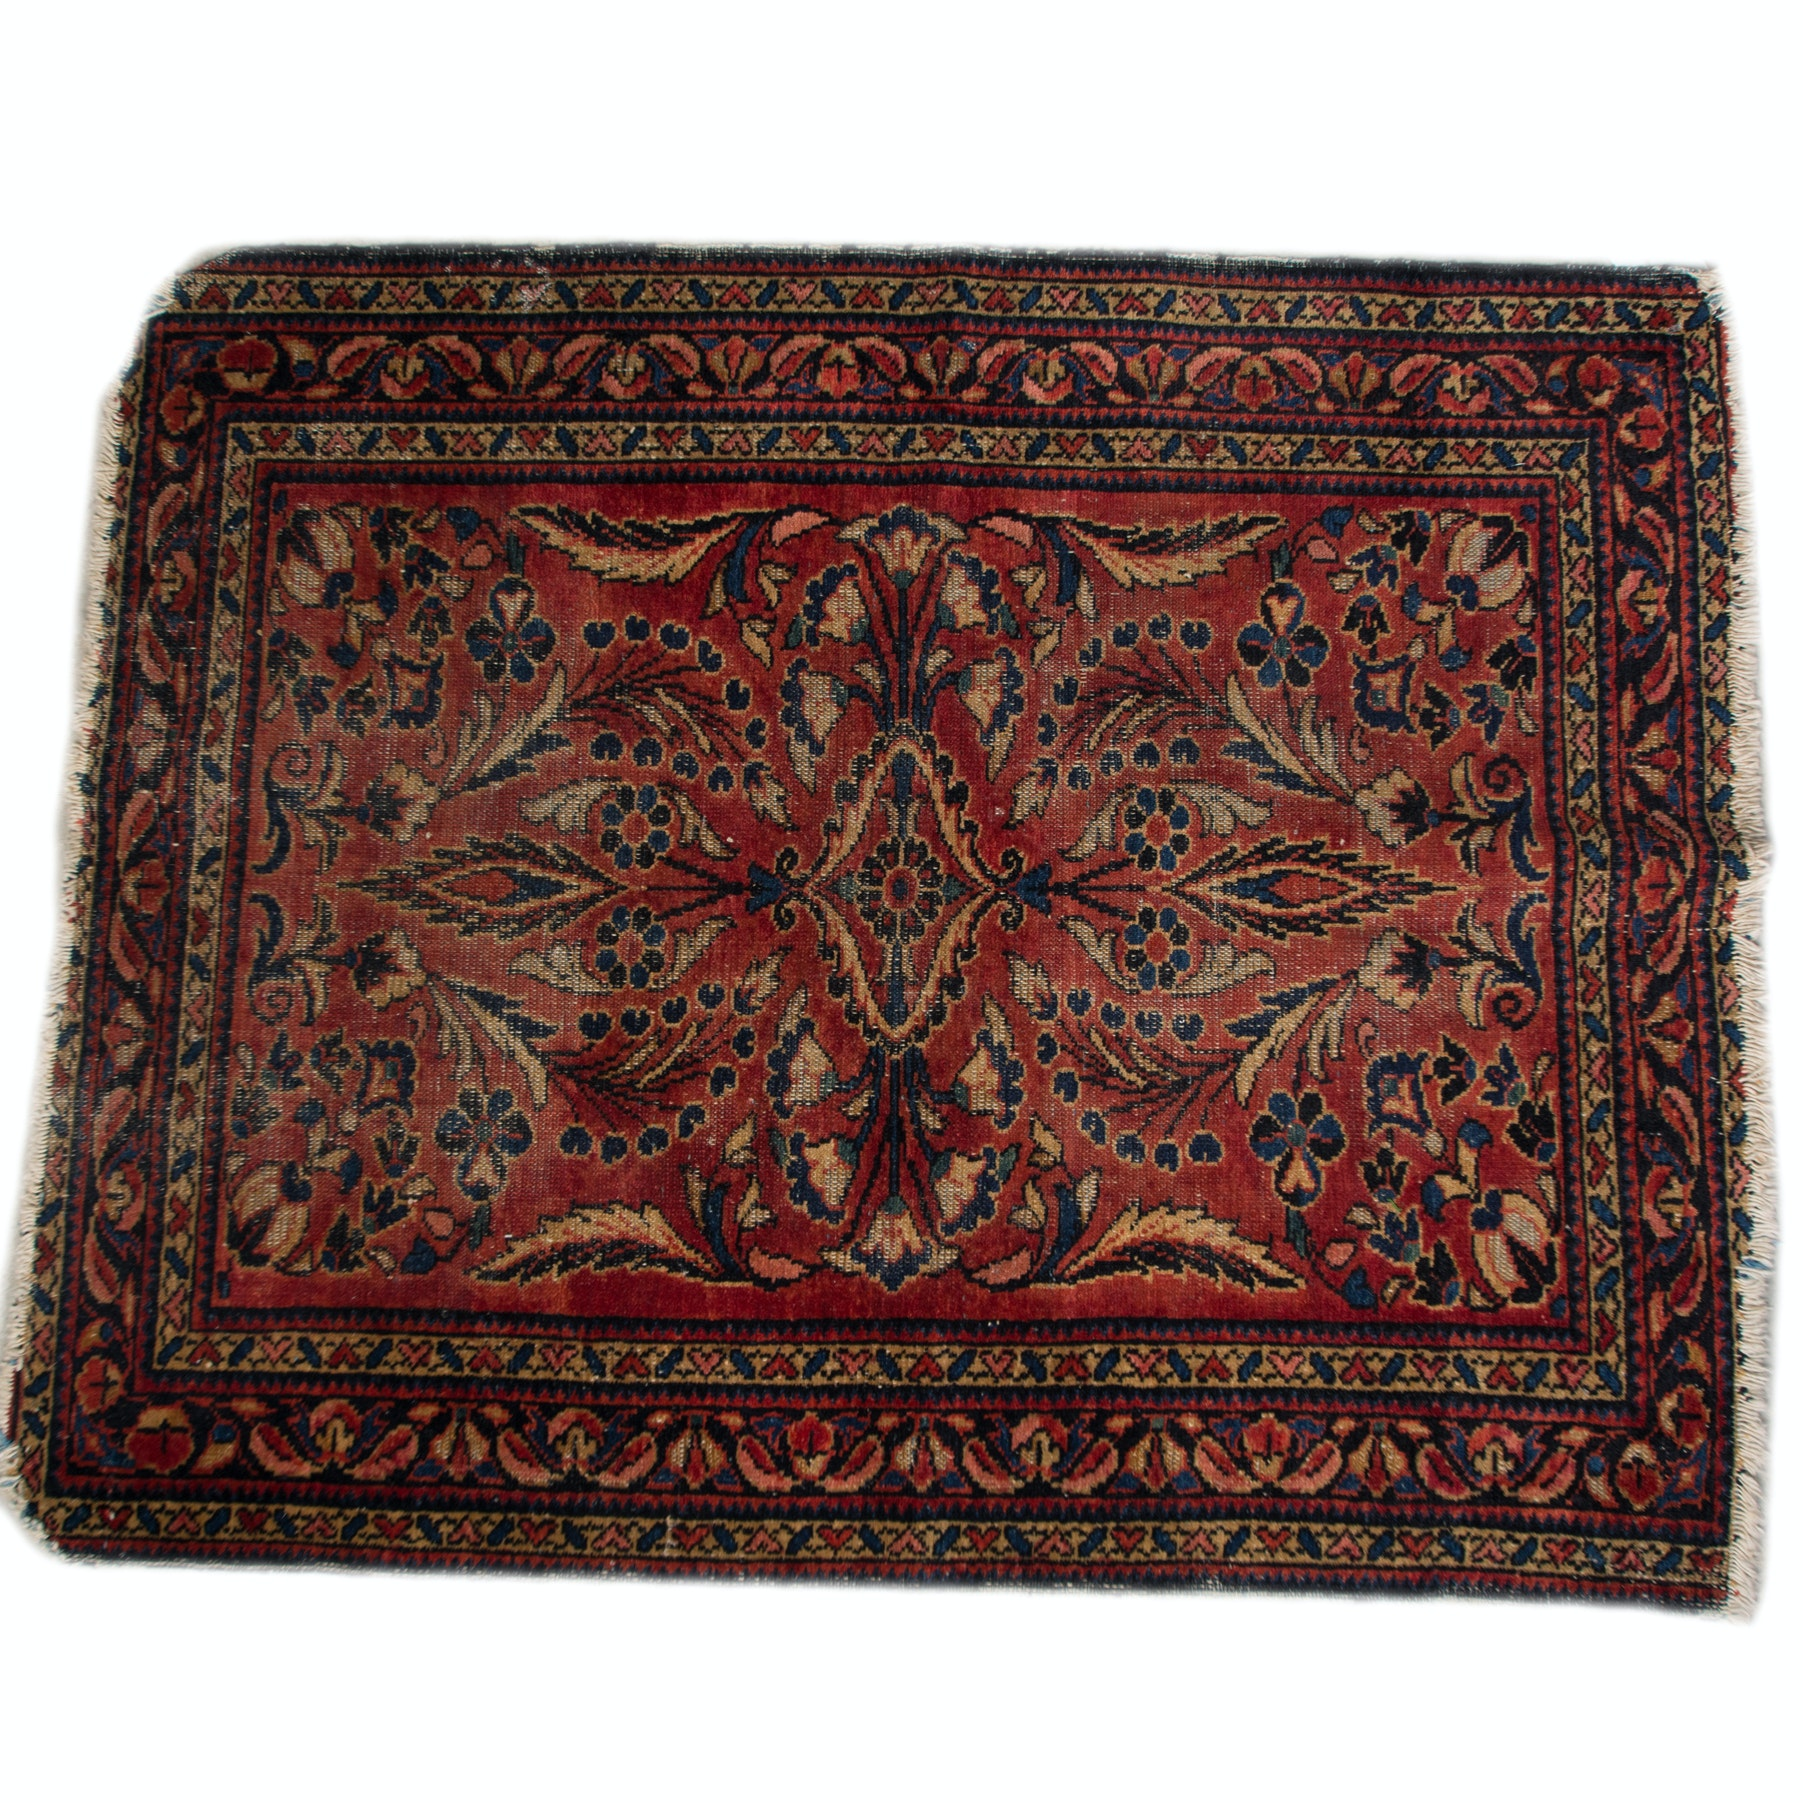 Antique Hand-Knotted Sarouk Wool Accent Rug